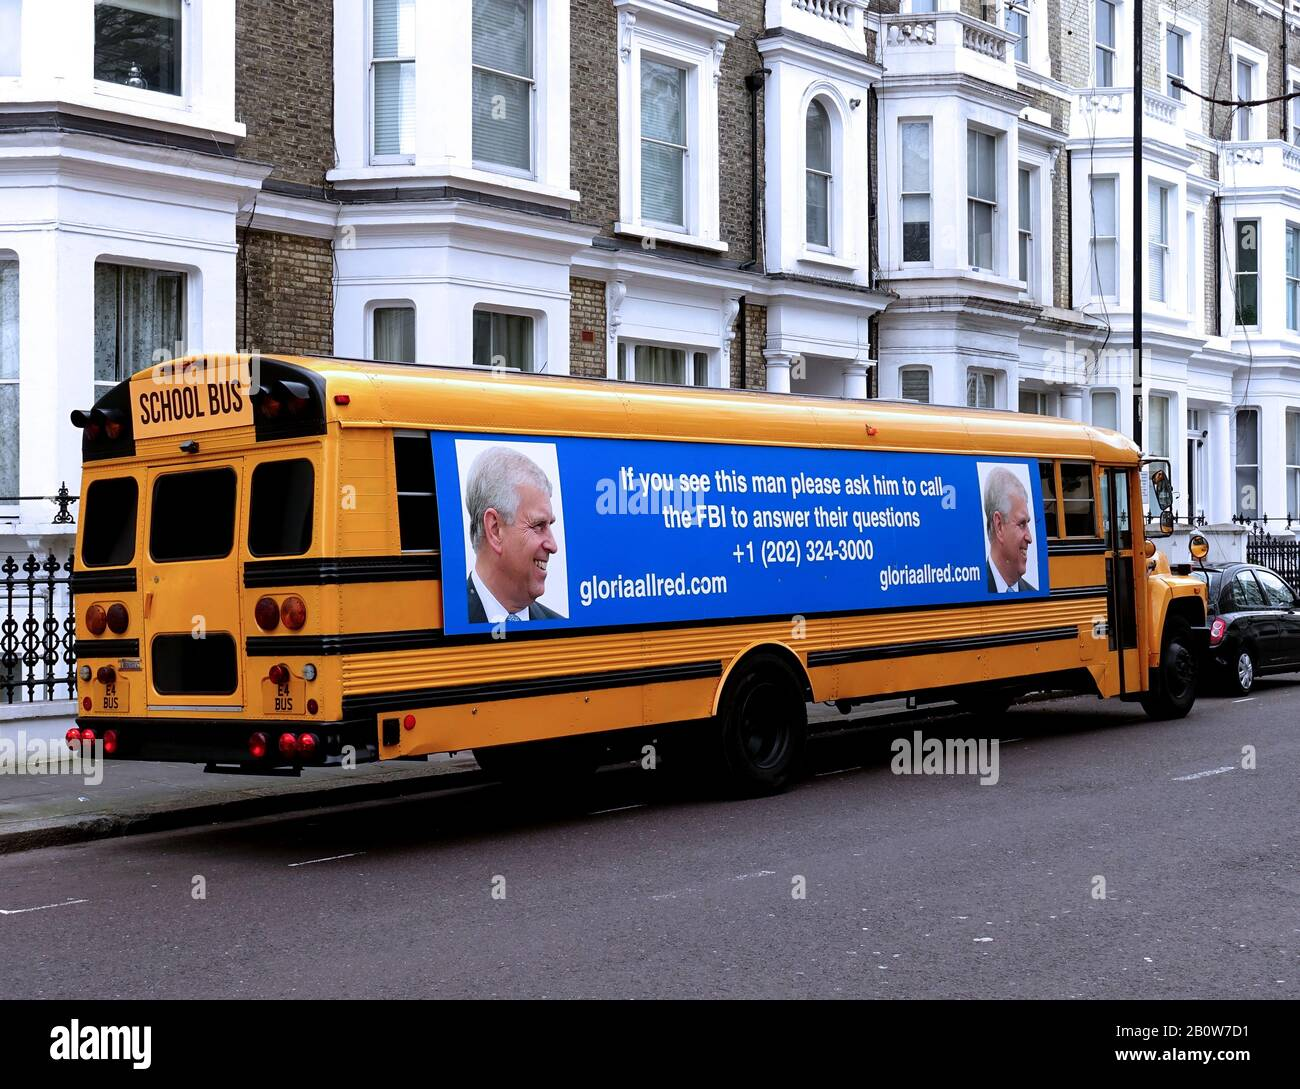 London, UK. 21st Feb, 2020. US school bus with poster urging the public to 'get Prince Andrew to call the FBI' if they see the Duke of York, tours London arranged by Jeffrey Epstein victims' lawyer. Credit: Brian Minkoff/Alamy Live News Stock Photo